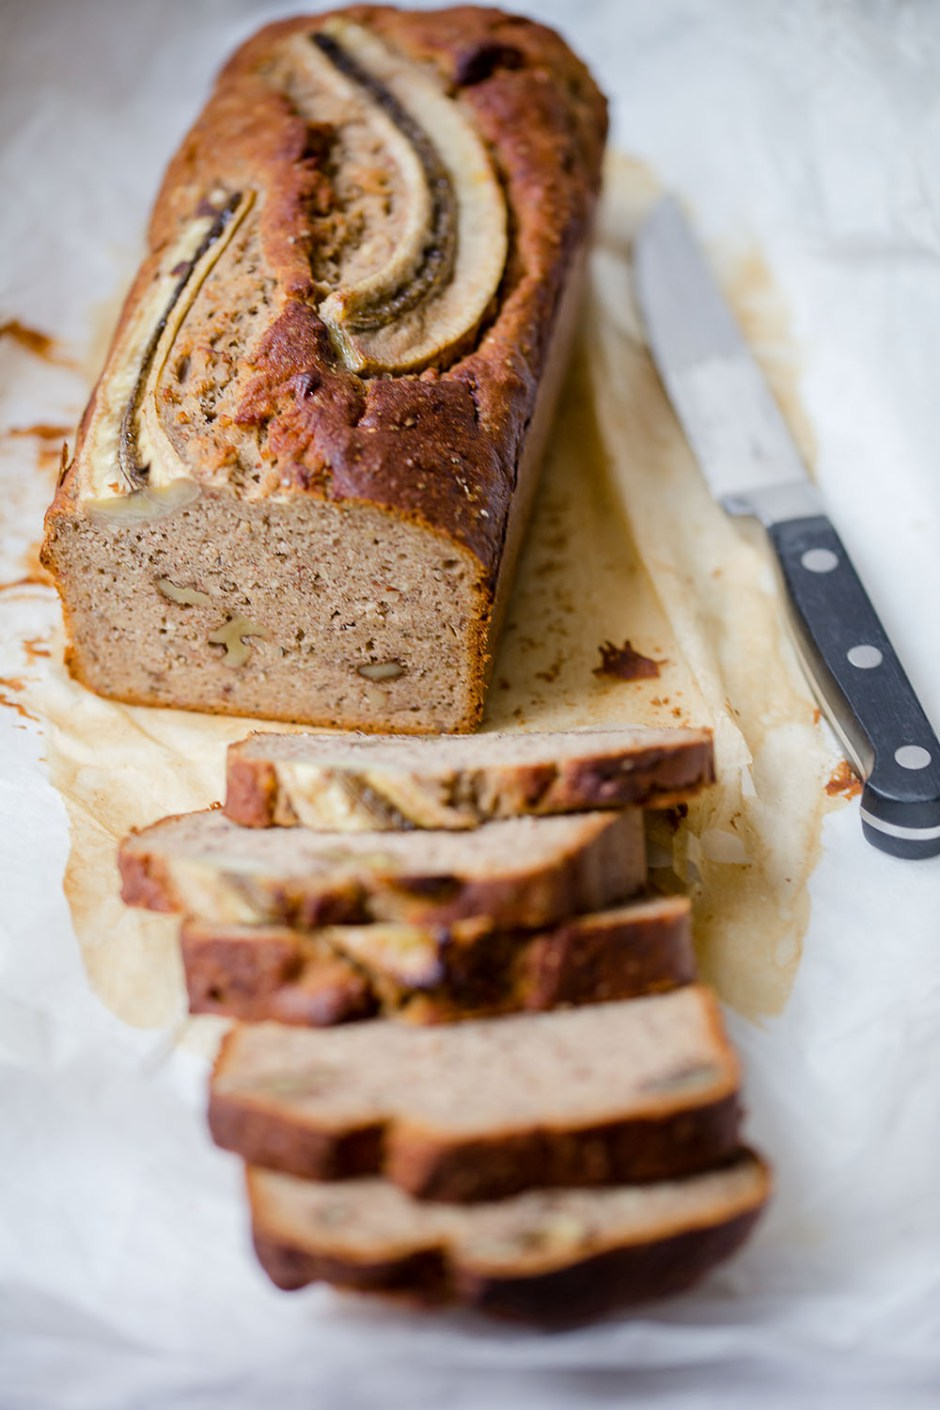 8-tokgott-bananbrod-med-bovete-insanely-delicious-buckwheat-banana-bread-5-vibrant-food-stories